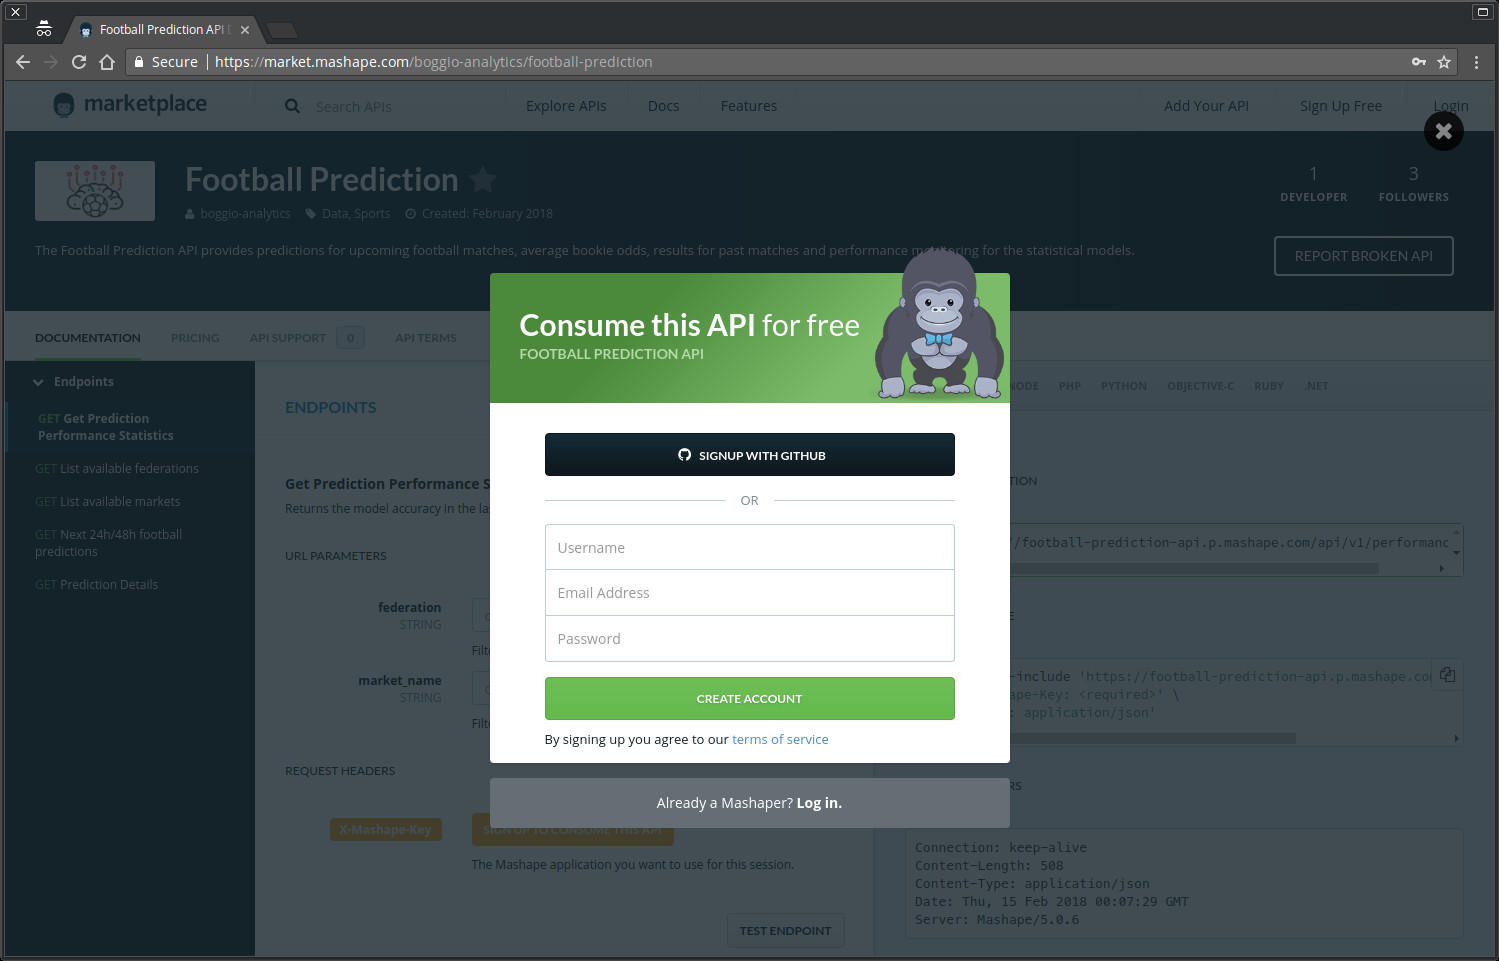 Football prediction API